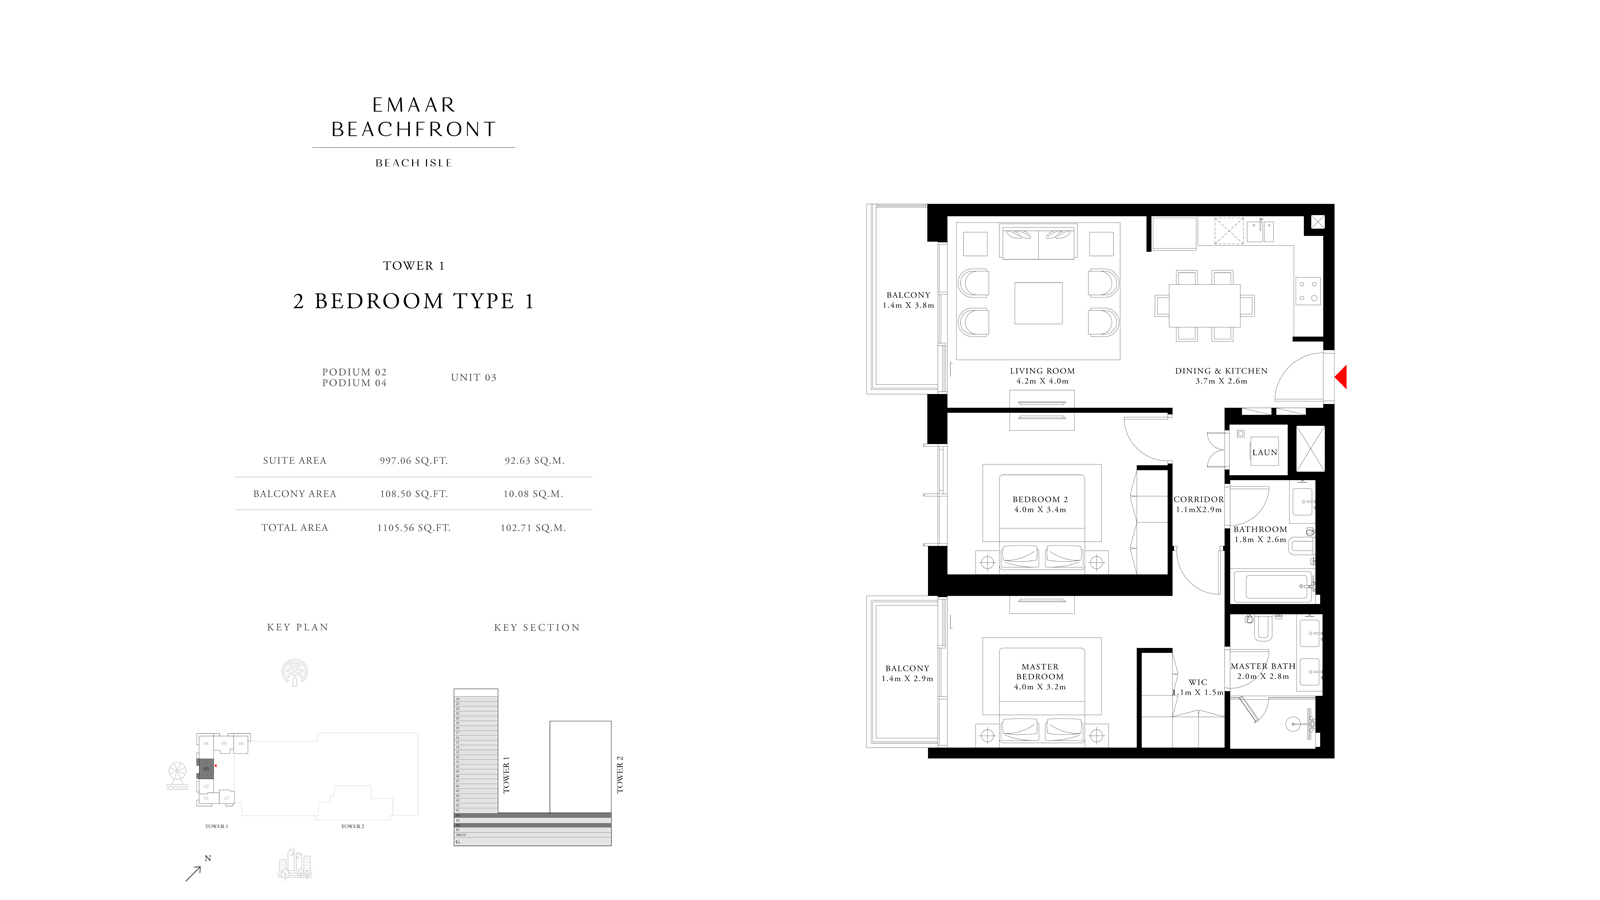 2 Bedroom Type 1 Tower 1, Size 1105 sq ft